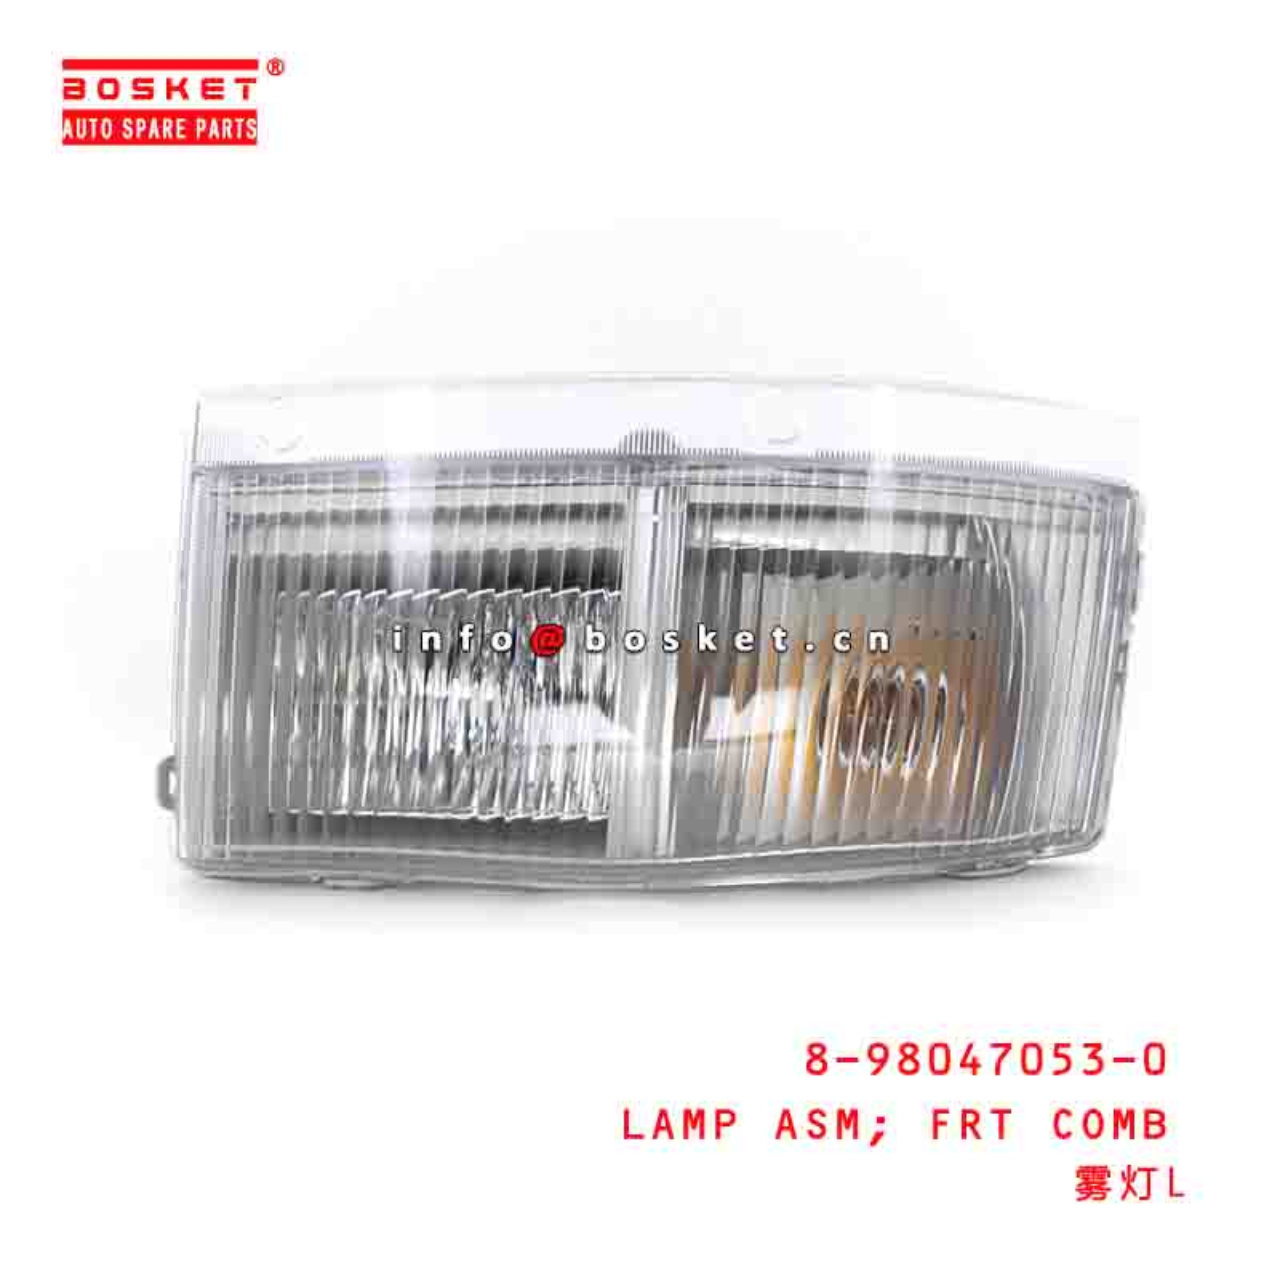 8-98047053-0 8980470530 QINGLING FRONT COMBINATION LAMP ASSEMBLY L Suitable FOR ISUZU VC46